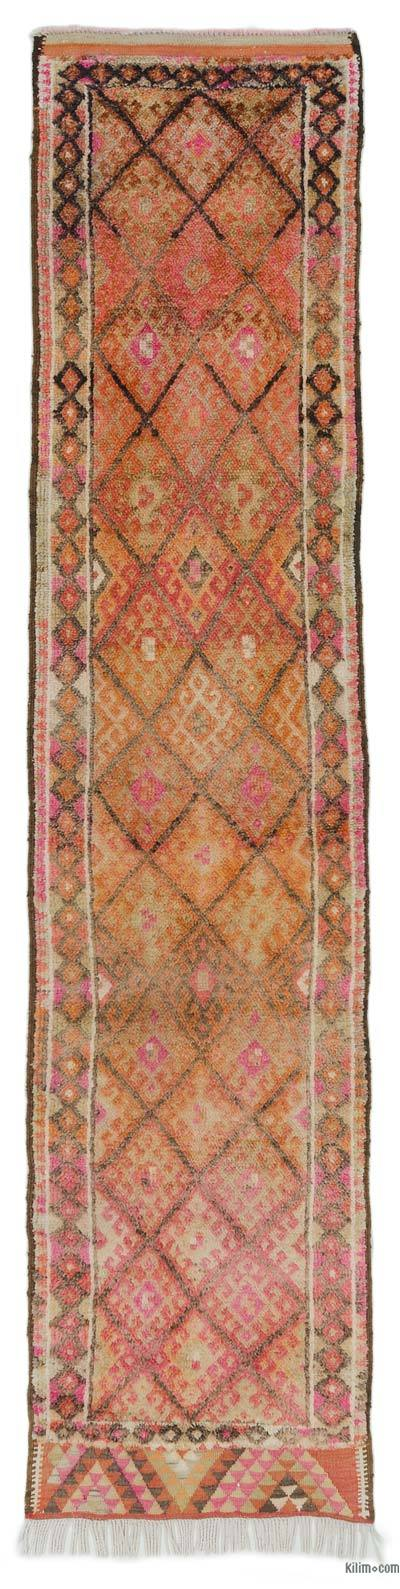 "Multicolor Vintage Turkish Runner Rug - 2' 8"" x 11' 5"" (32 in. x 137 in.)"